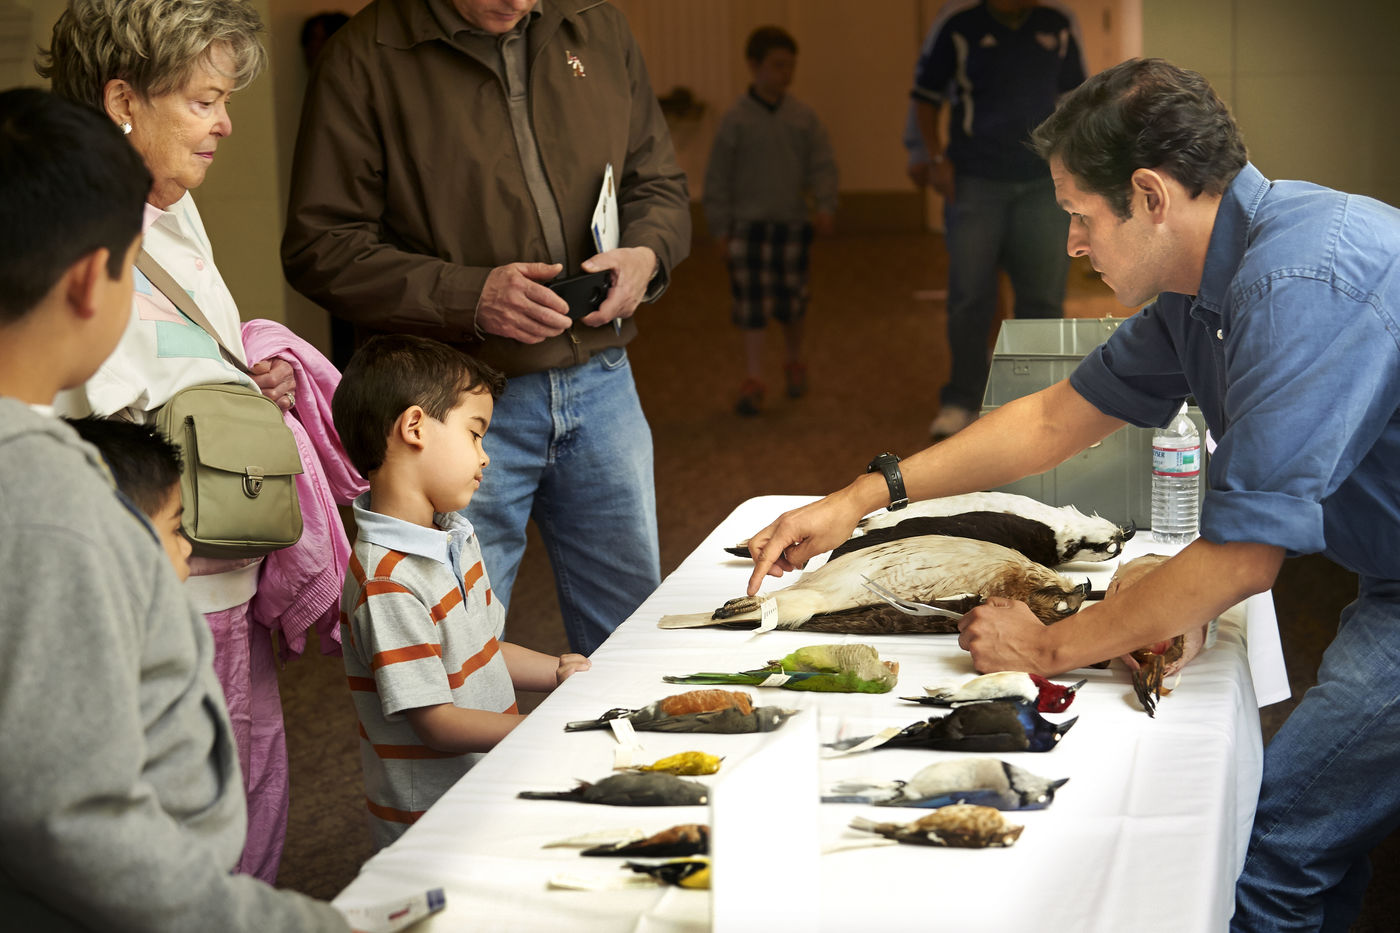 A Field Museum staff member shows bird specimens from the Museum's collection to a group of visitors.